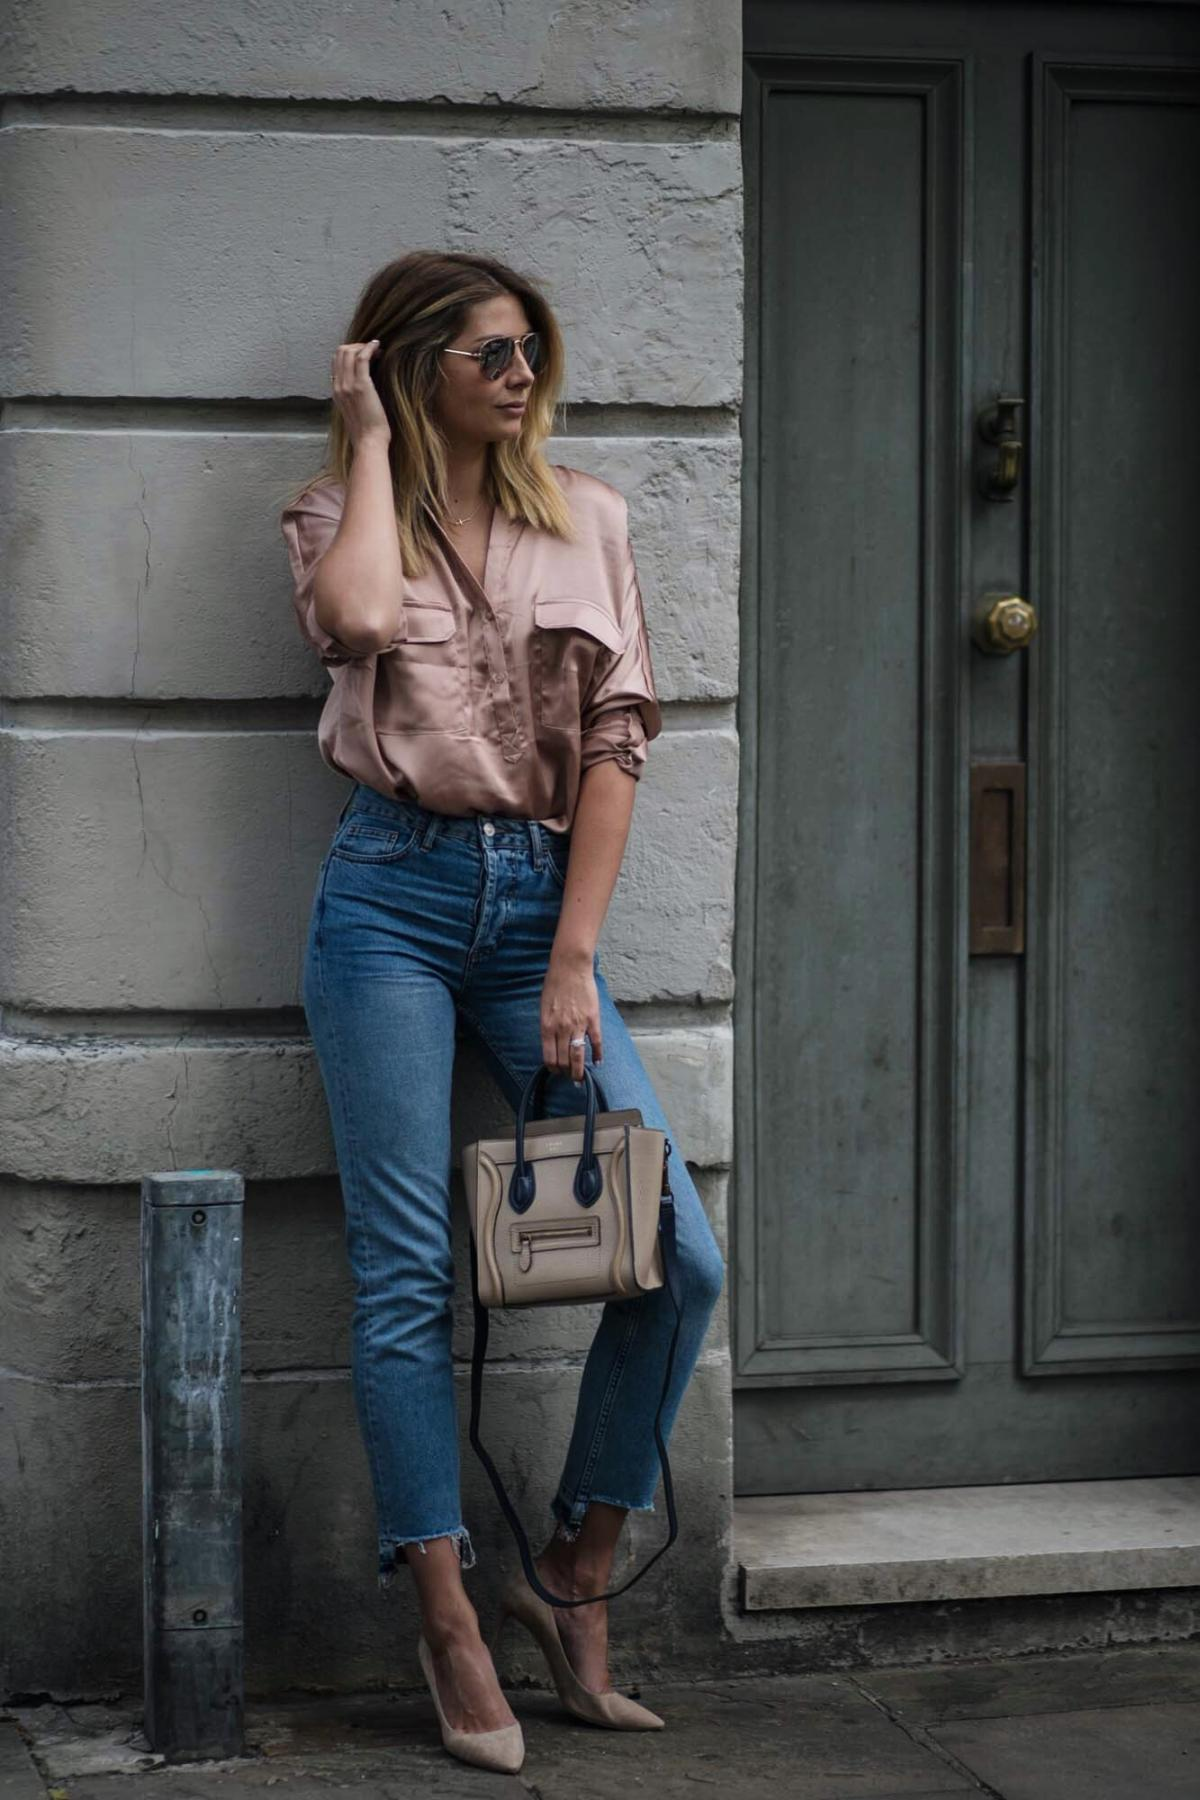 Satin shirt, straight leg stepped hem jeans, celine nano bag, jimmy choo romy court shoes beige suede, date night outfit ideas